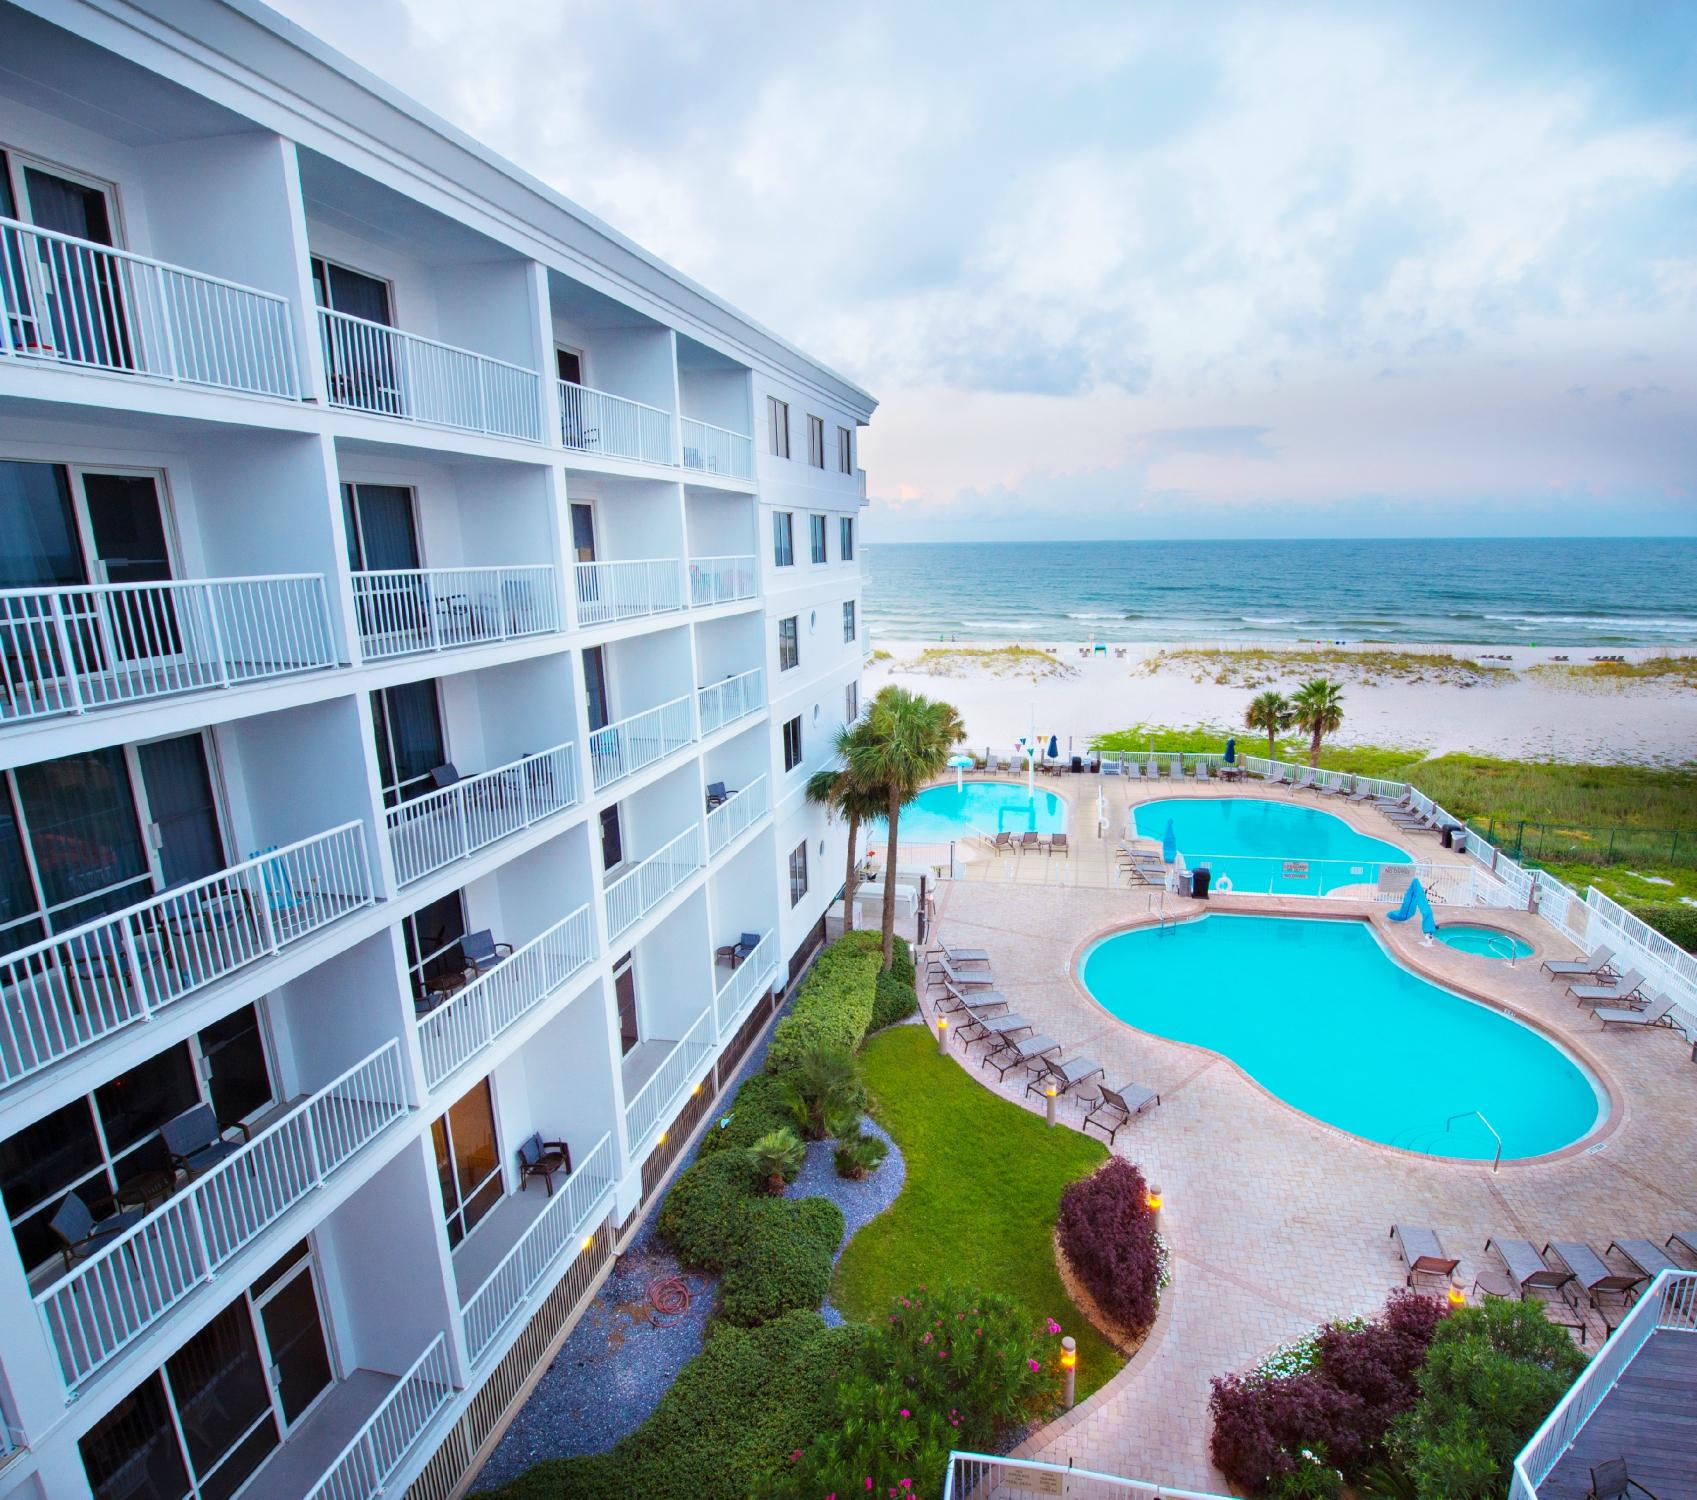 Springhill Suites Pensacola Beach Fl 2018 Hotel Review Family Vacation Critic